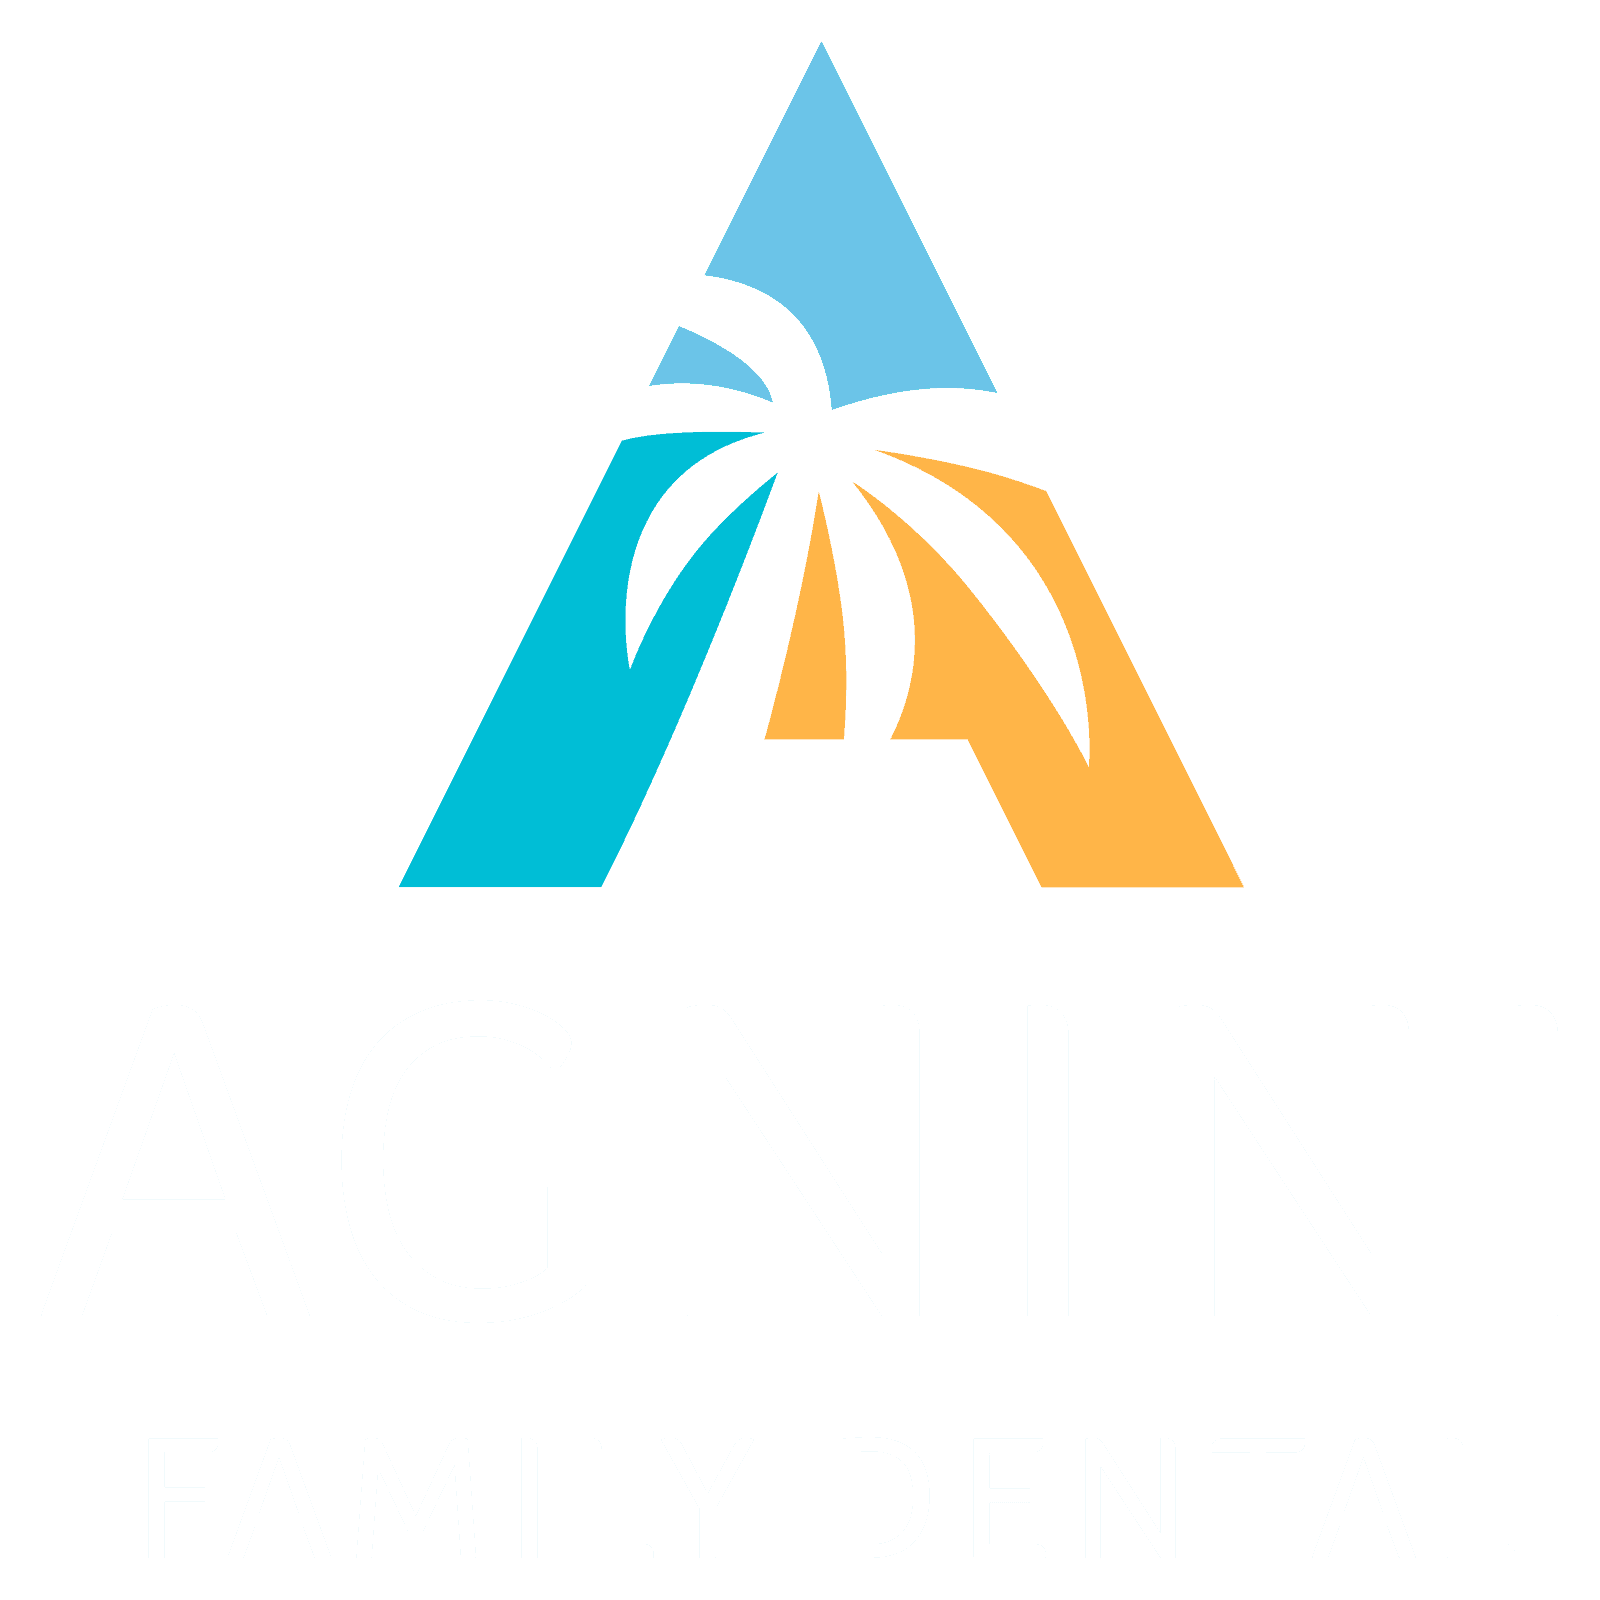 agnini-logo-stacked-reversed-noback